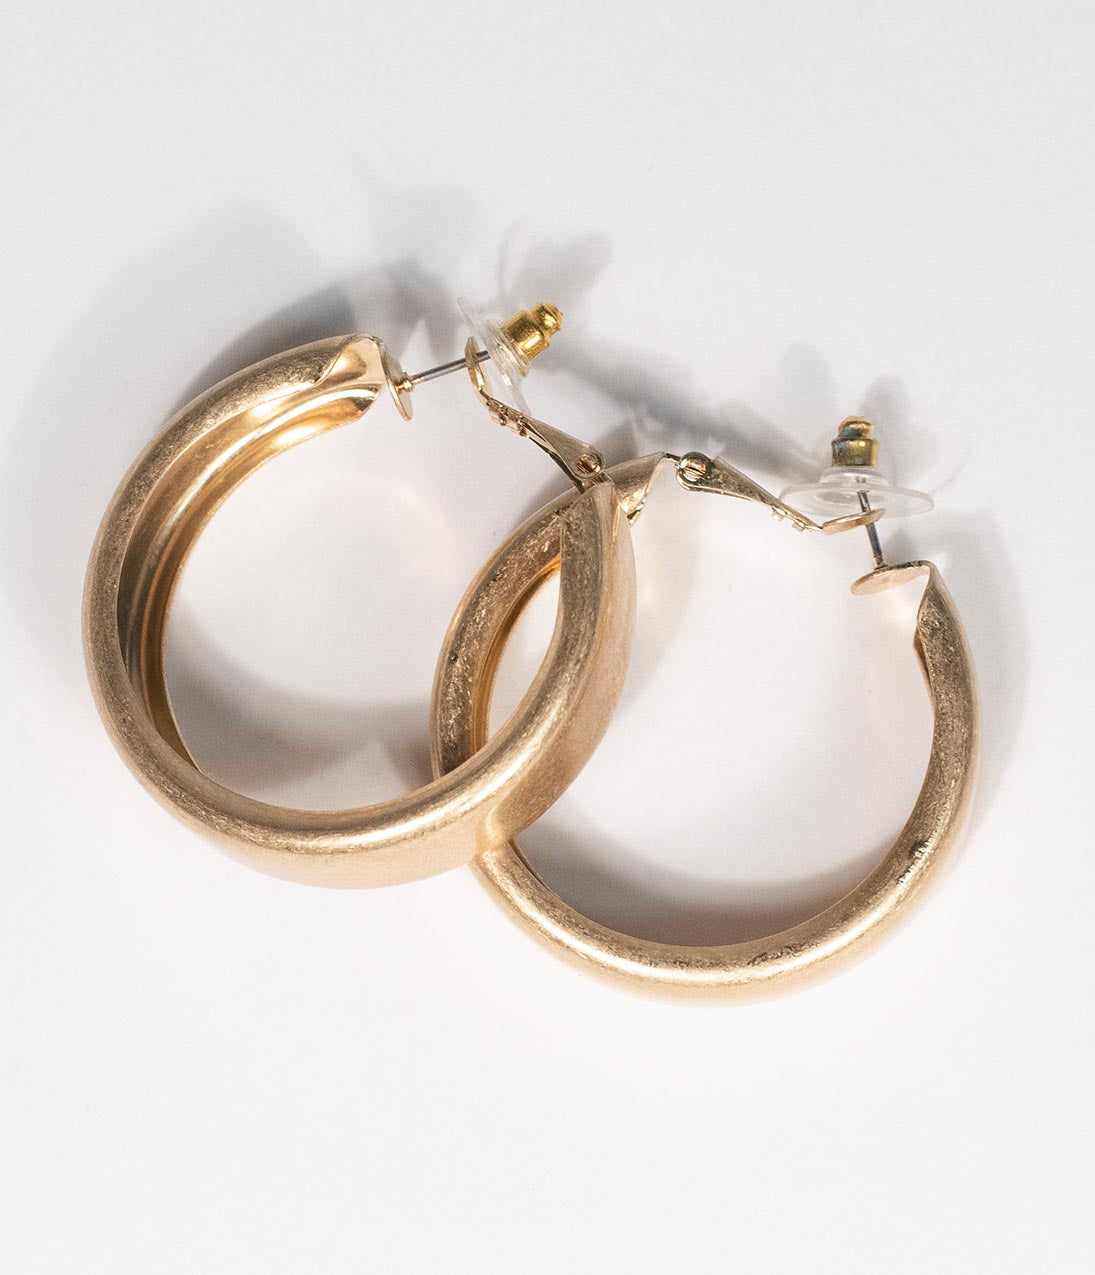 50s Jewelry: Earrings, Necklace, Brooch, Bracelet Matte Gold Hoop Earrings $12.00 AT vintagedancer.com